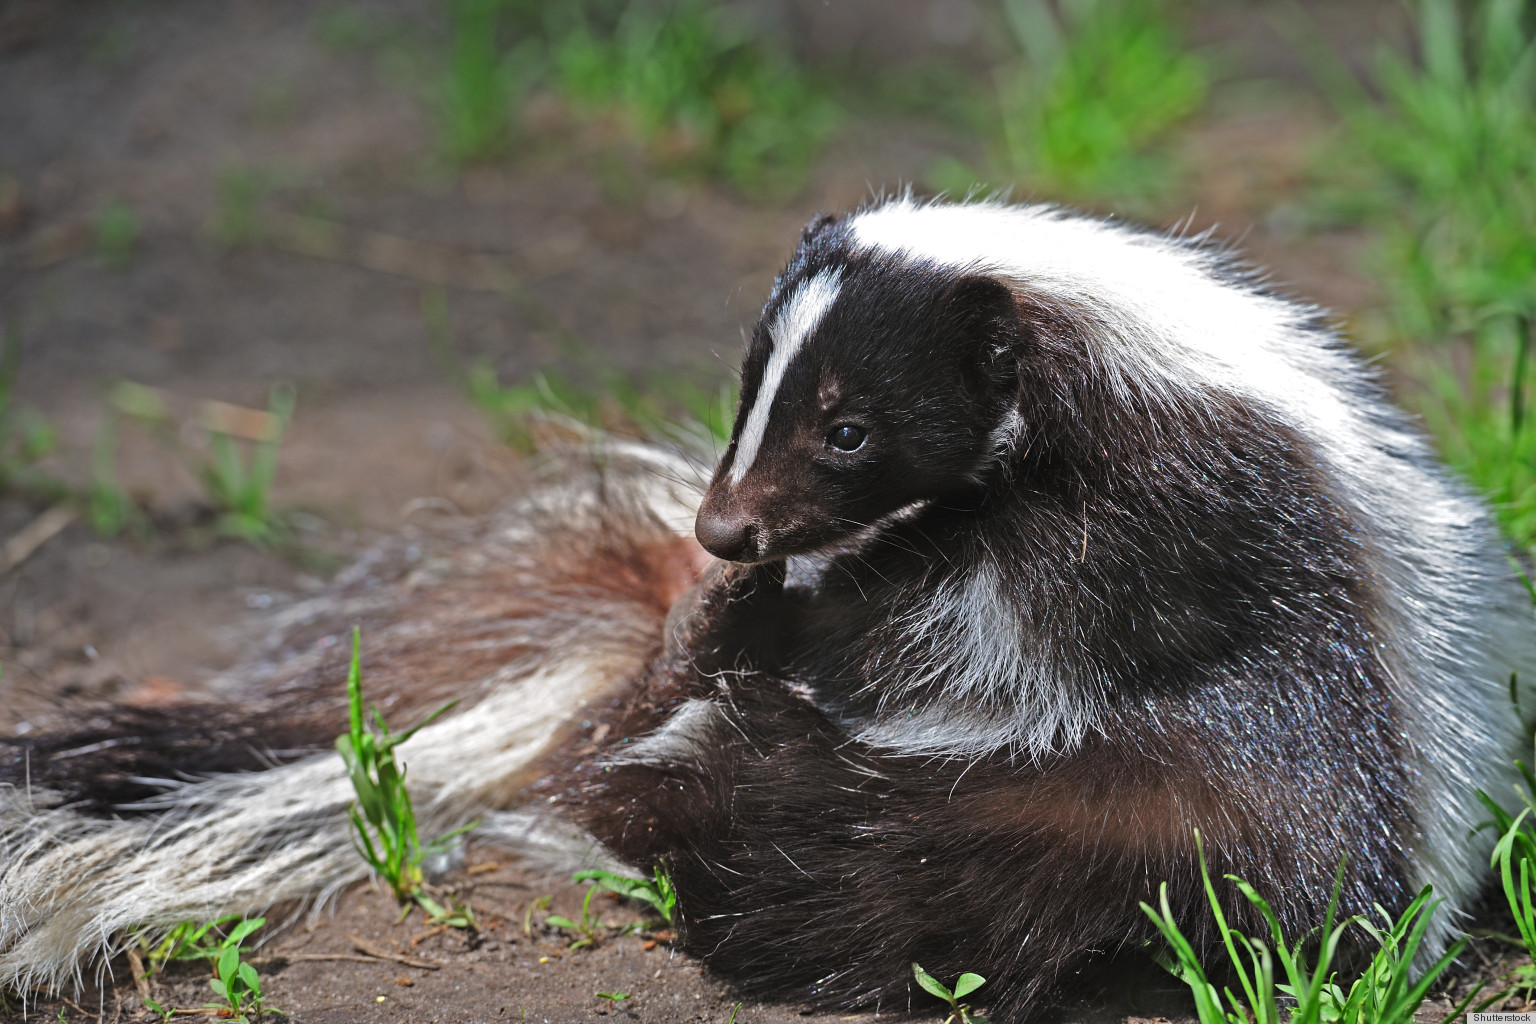 remove skunk odors from your home with just some vinegar